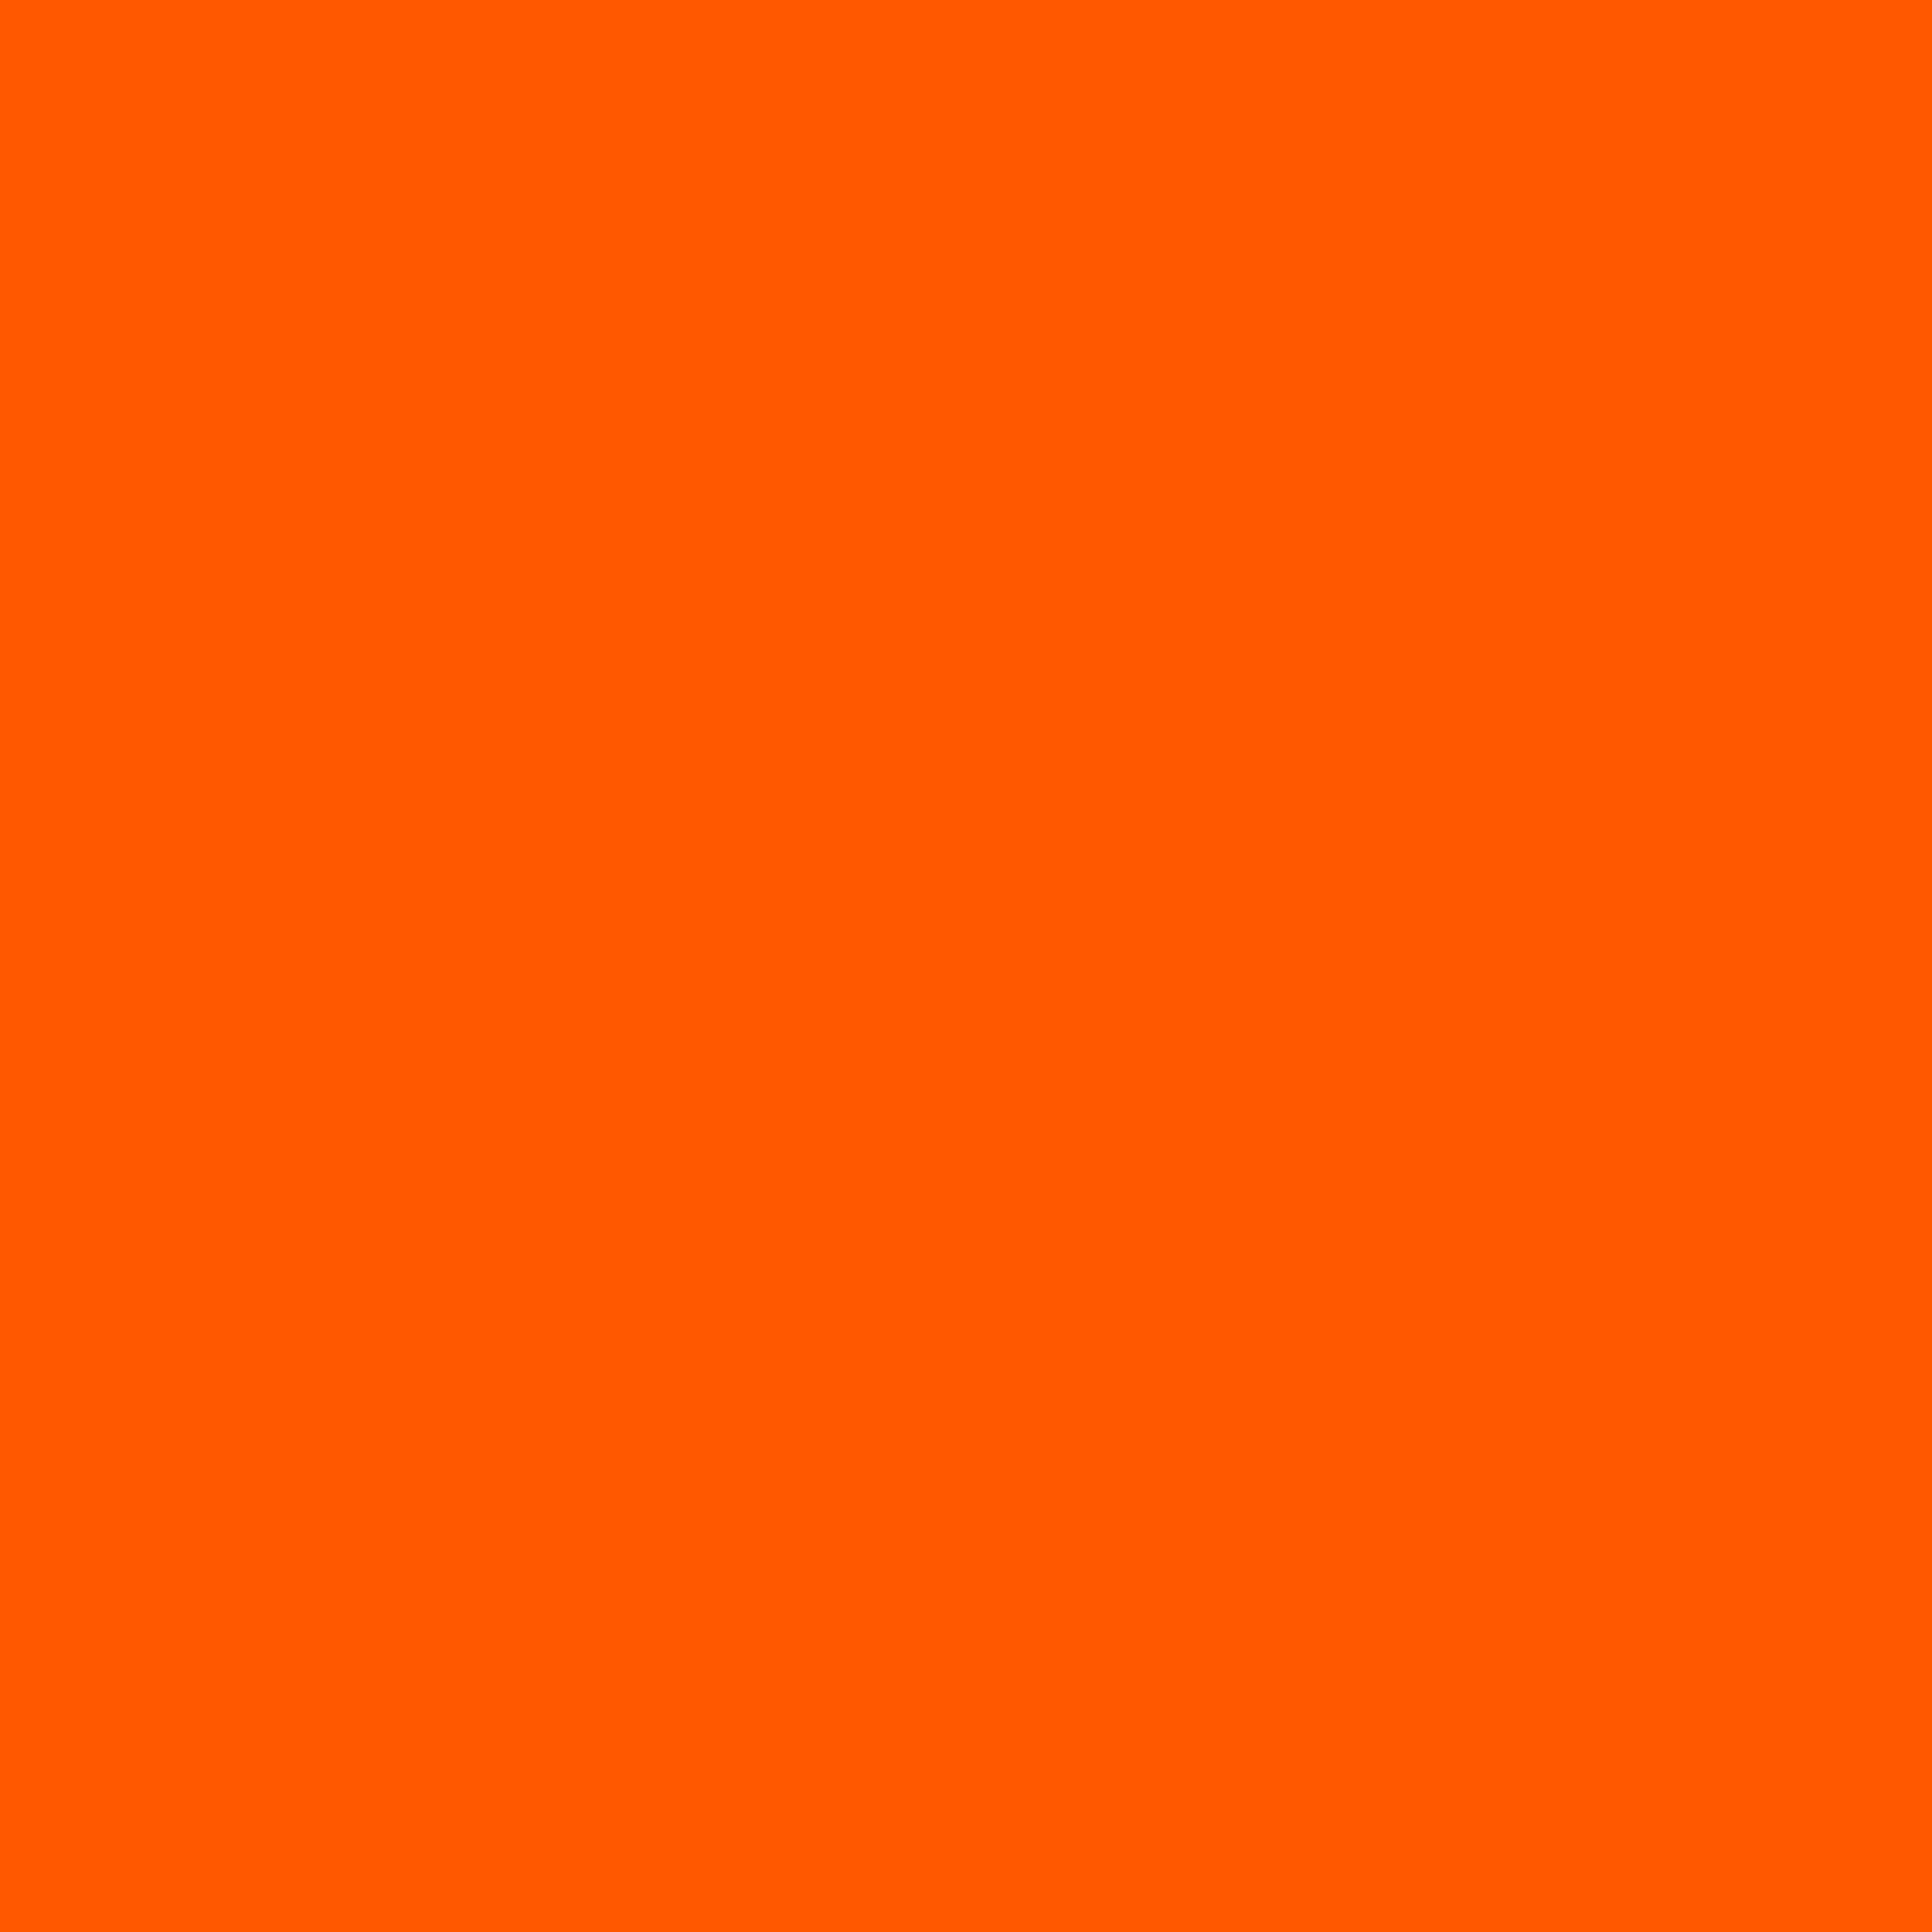 2732x2732 Orange Pantone Solid Color Background